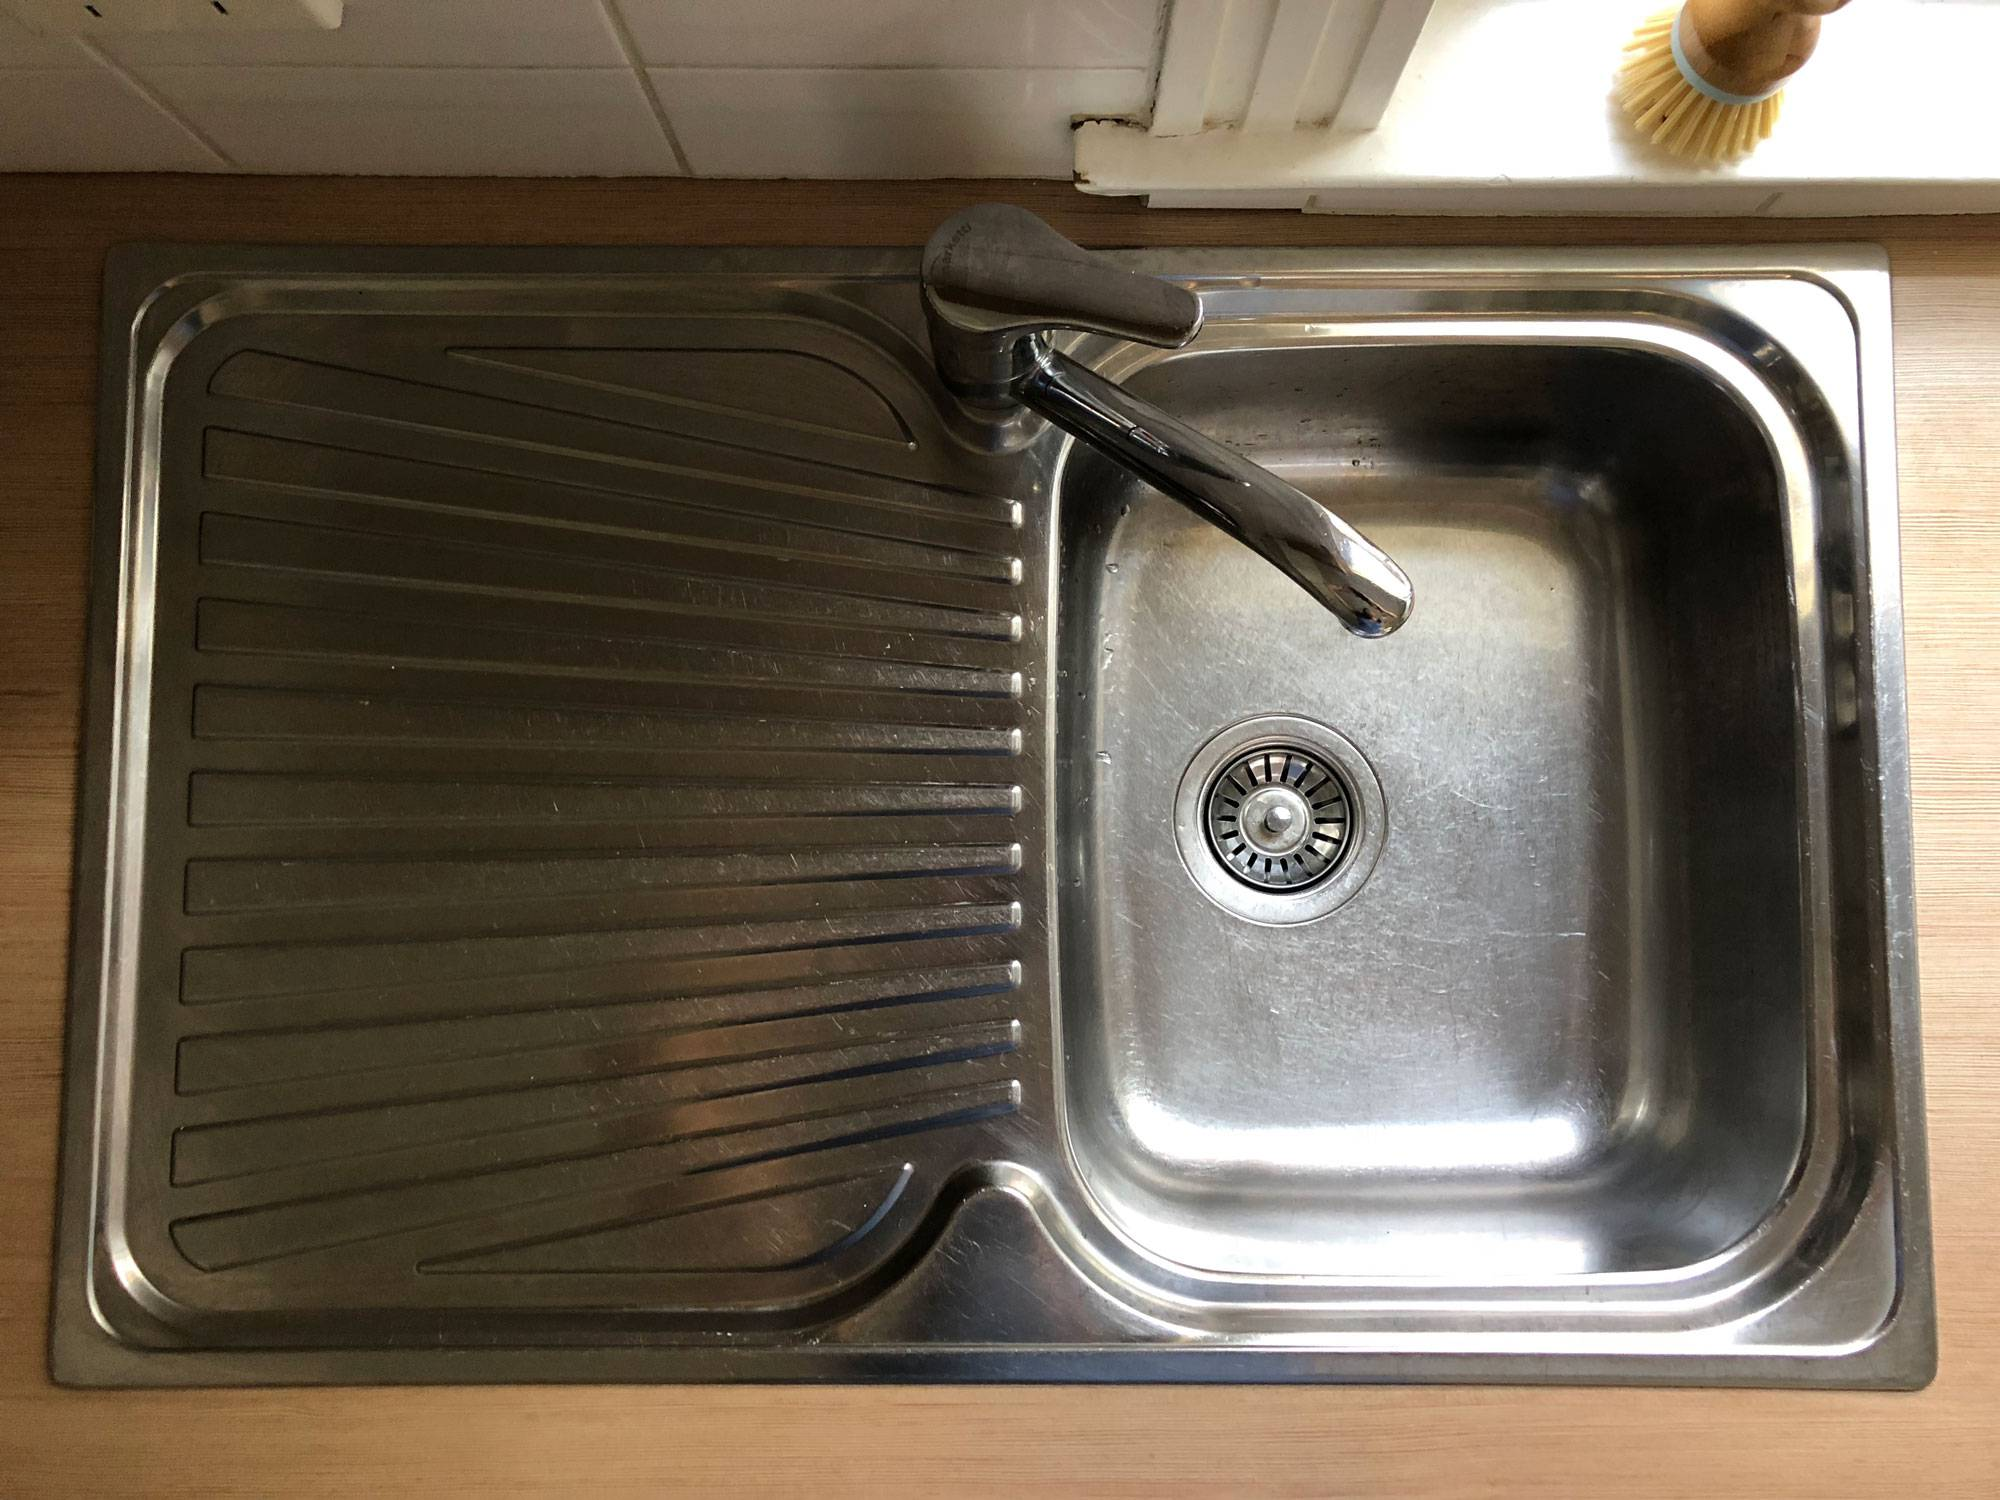 Koala Eco kitchen sink clean after